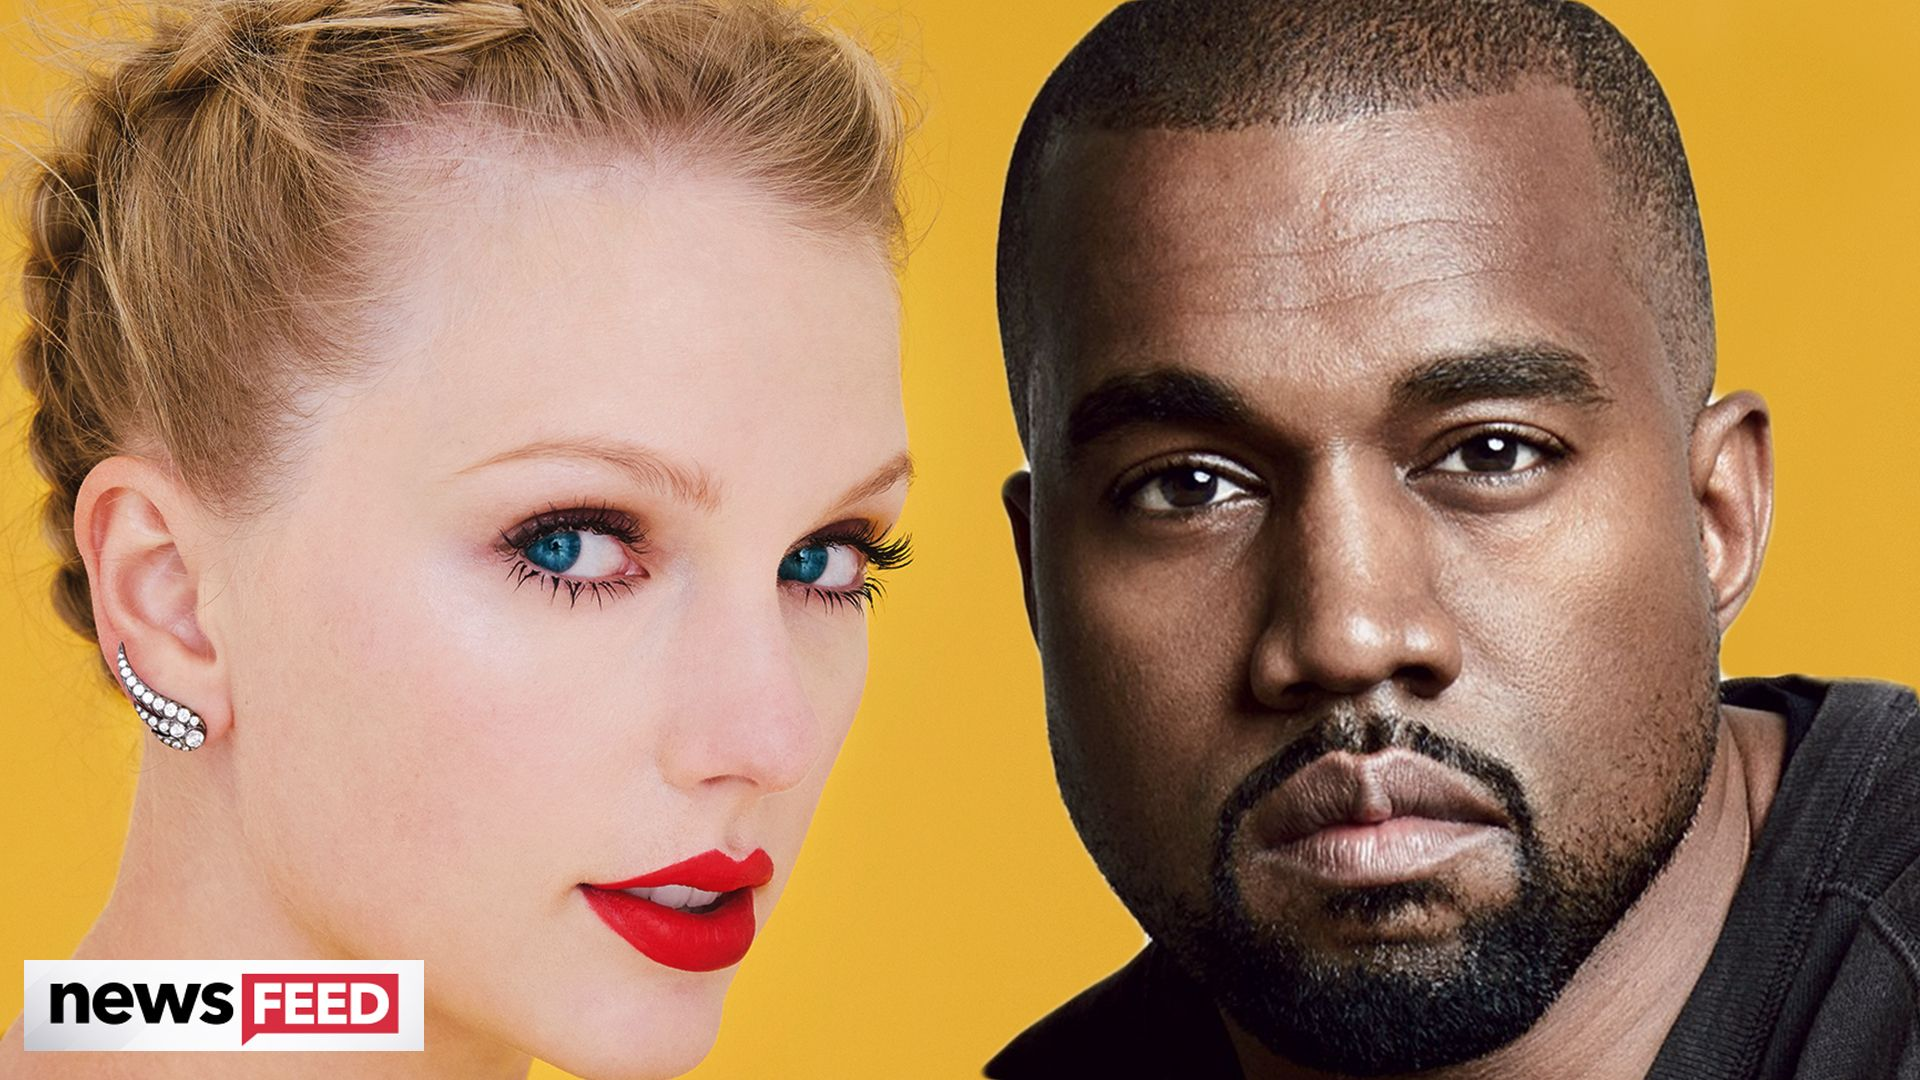 Taylor Swift Calls Out 'Two-Faced' Kanye West Over That Infamous Phone Call